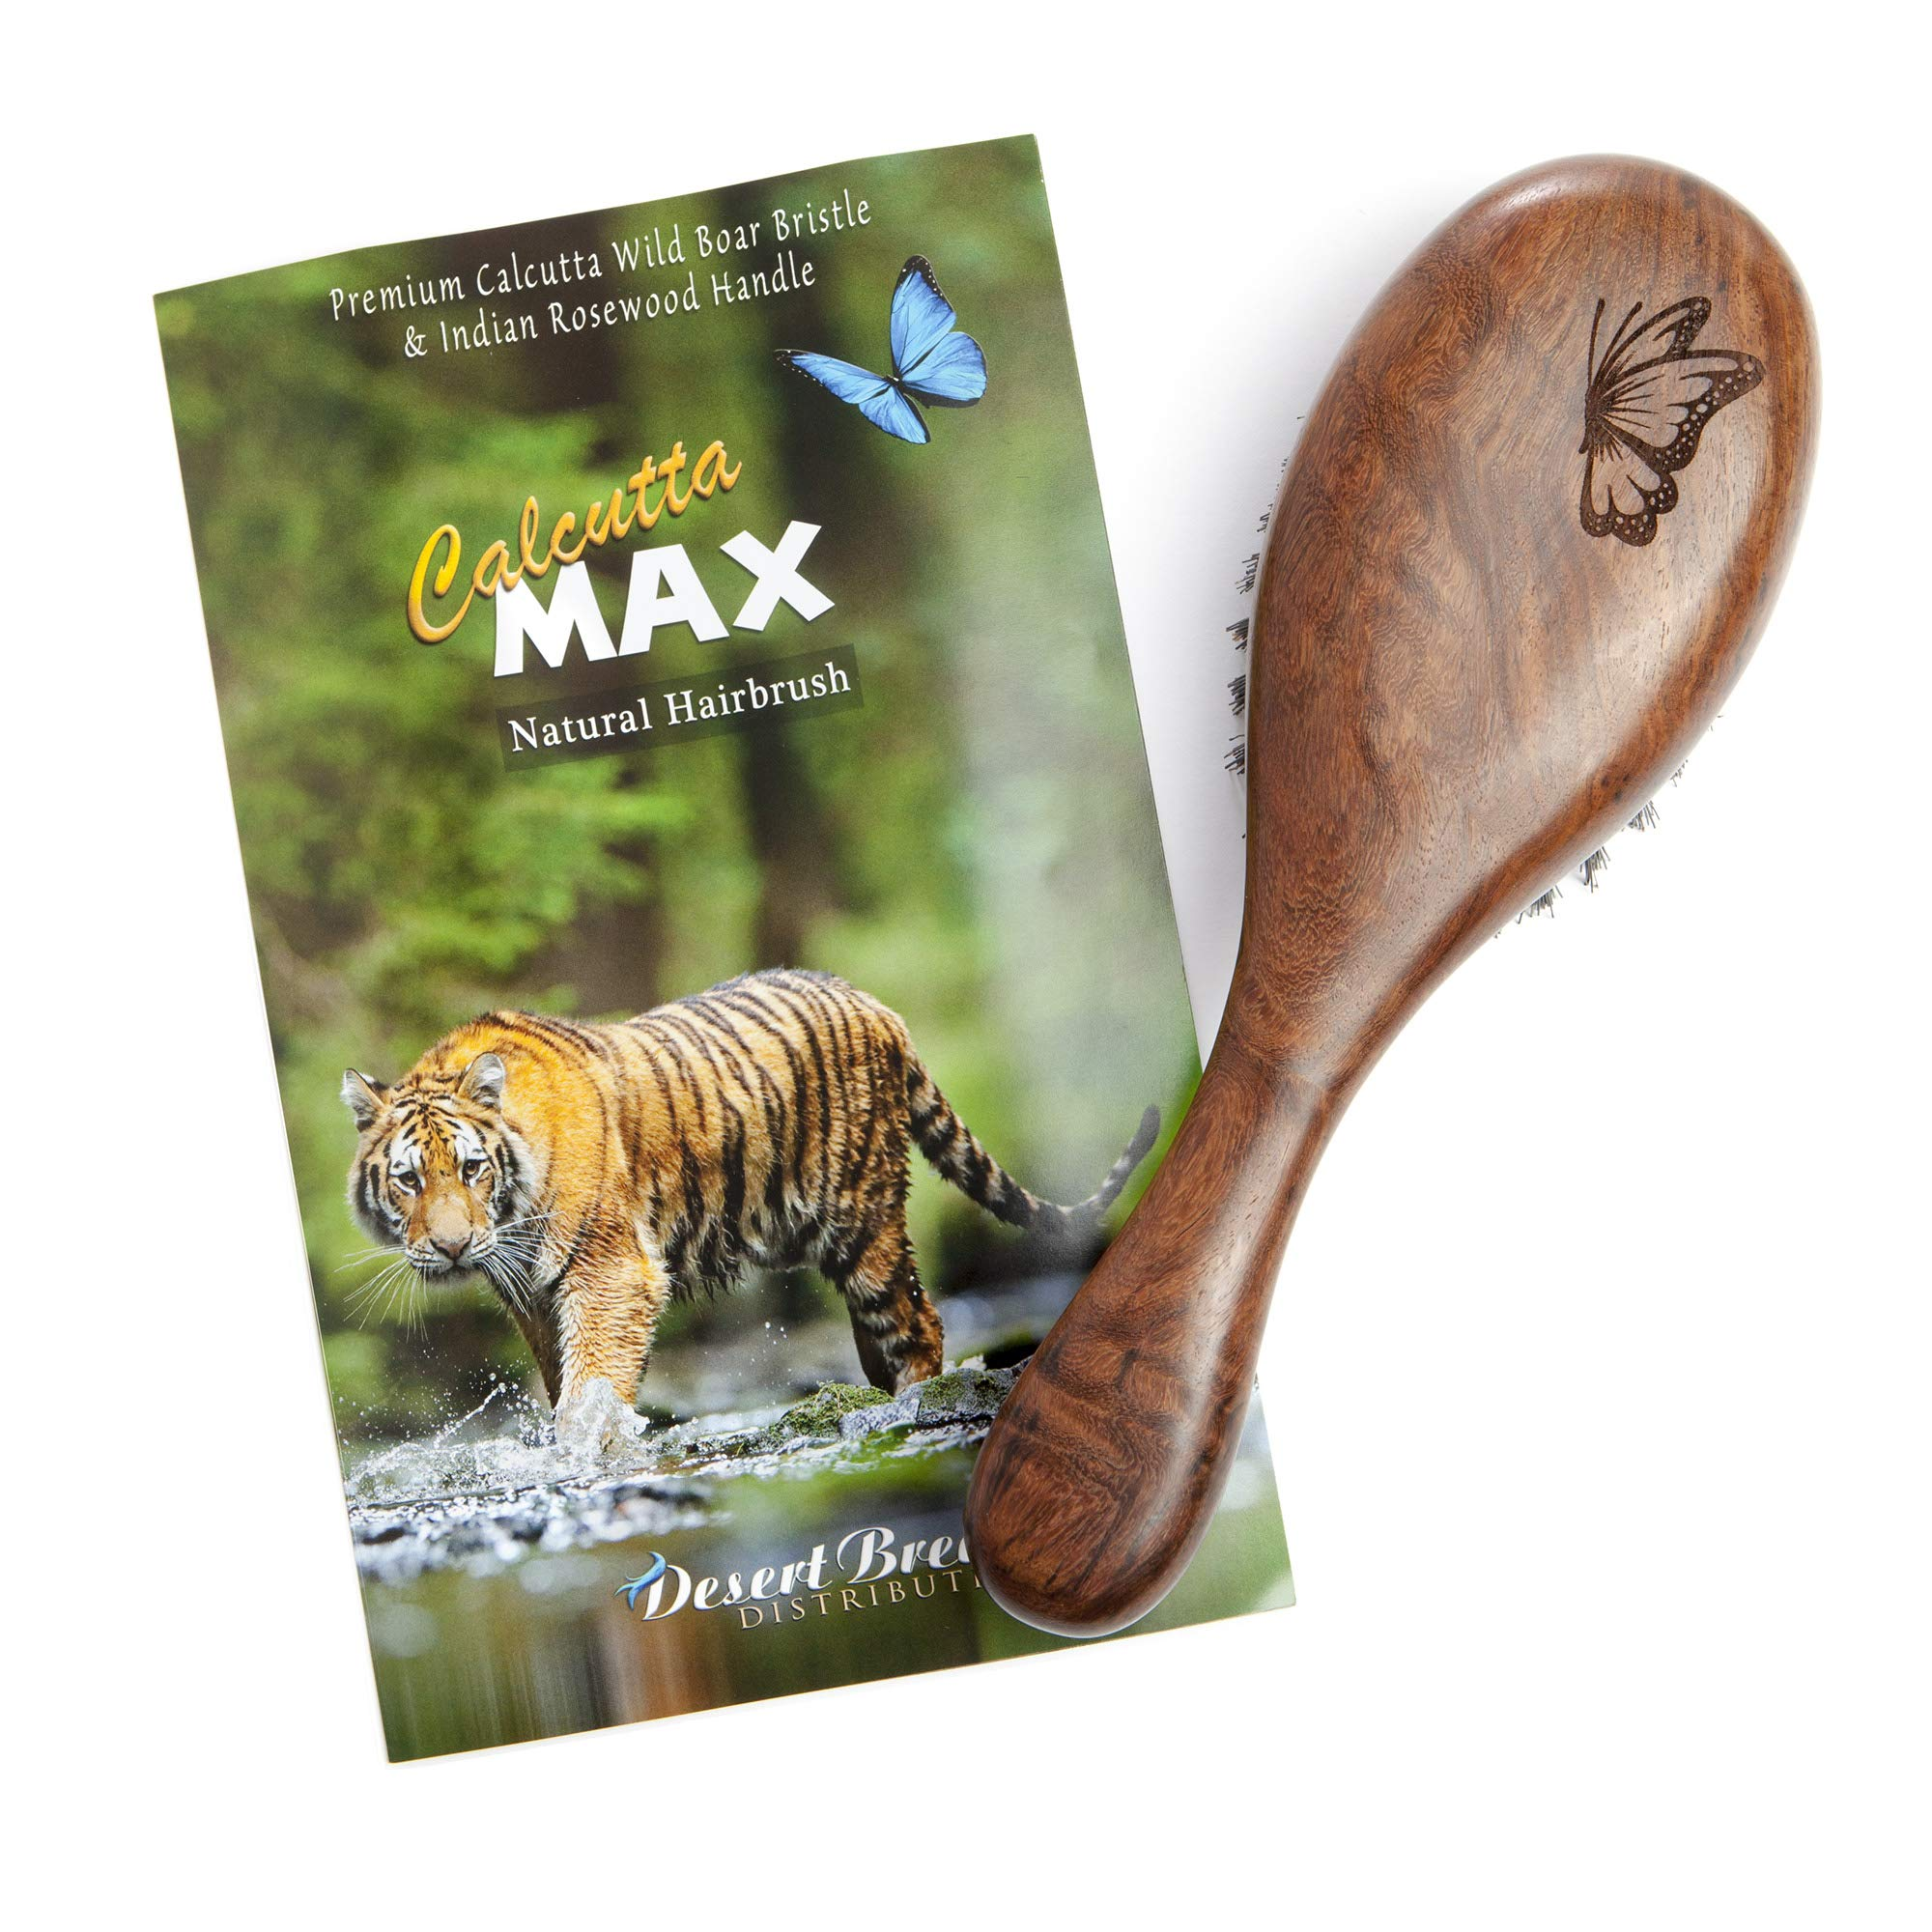 100% Pure Wild Boar Bristle Hair Brush, Calcutta Max for Thick or Long Hair, Gentle, Extra Stiff Natural Bristles, Hand Finished Indian Rosewood Handle, Tufted in USA, by Desert Breeze Distributing by Desert Breeze Distributing (Image #7)